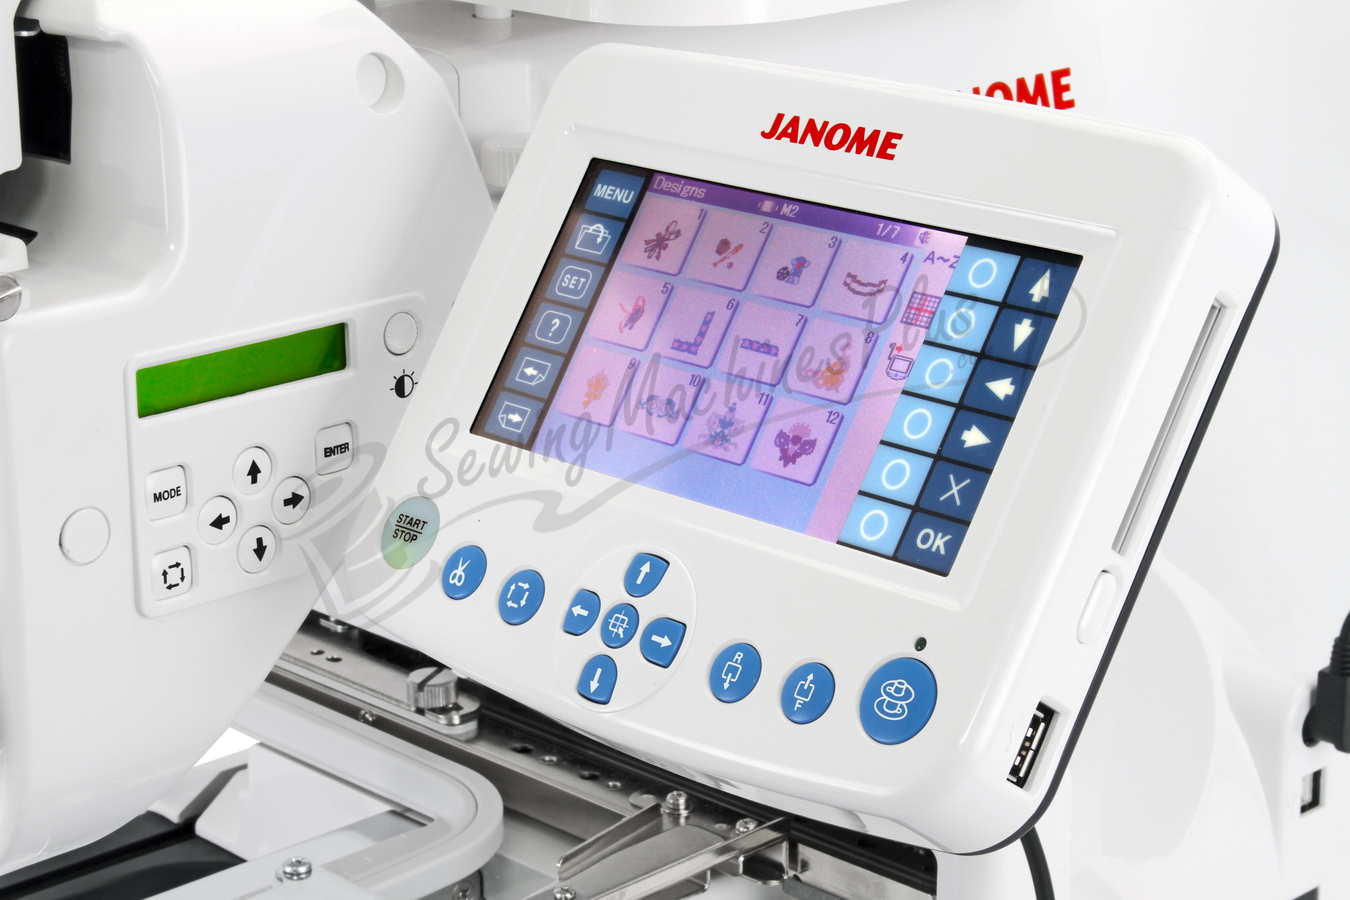 janome mb4s embroidery machine